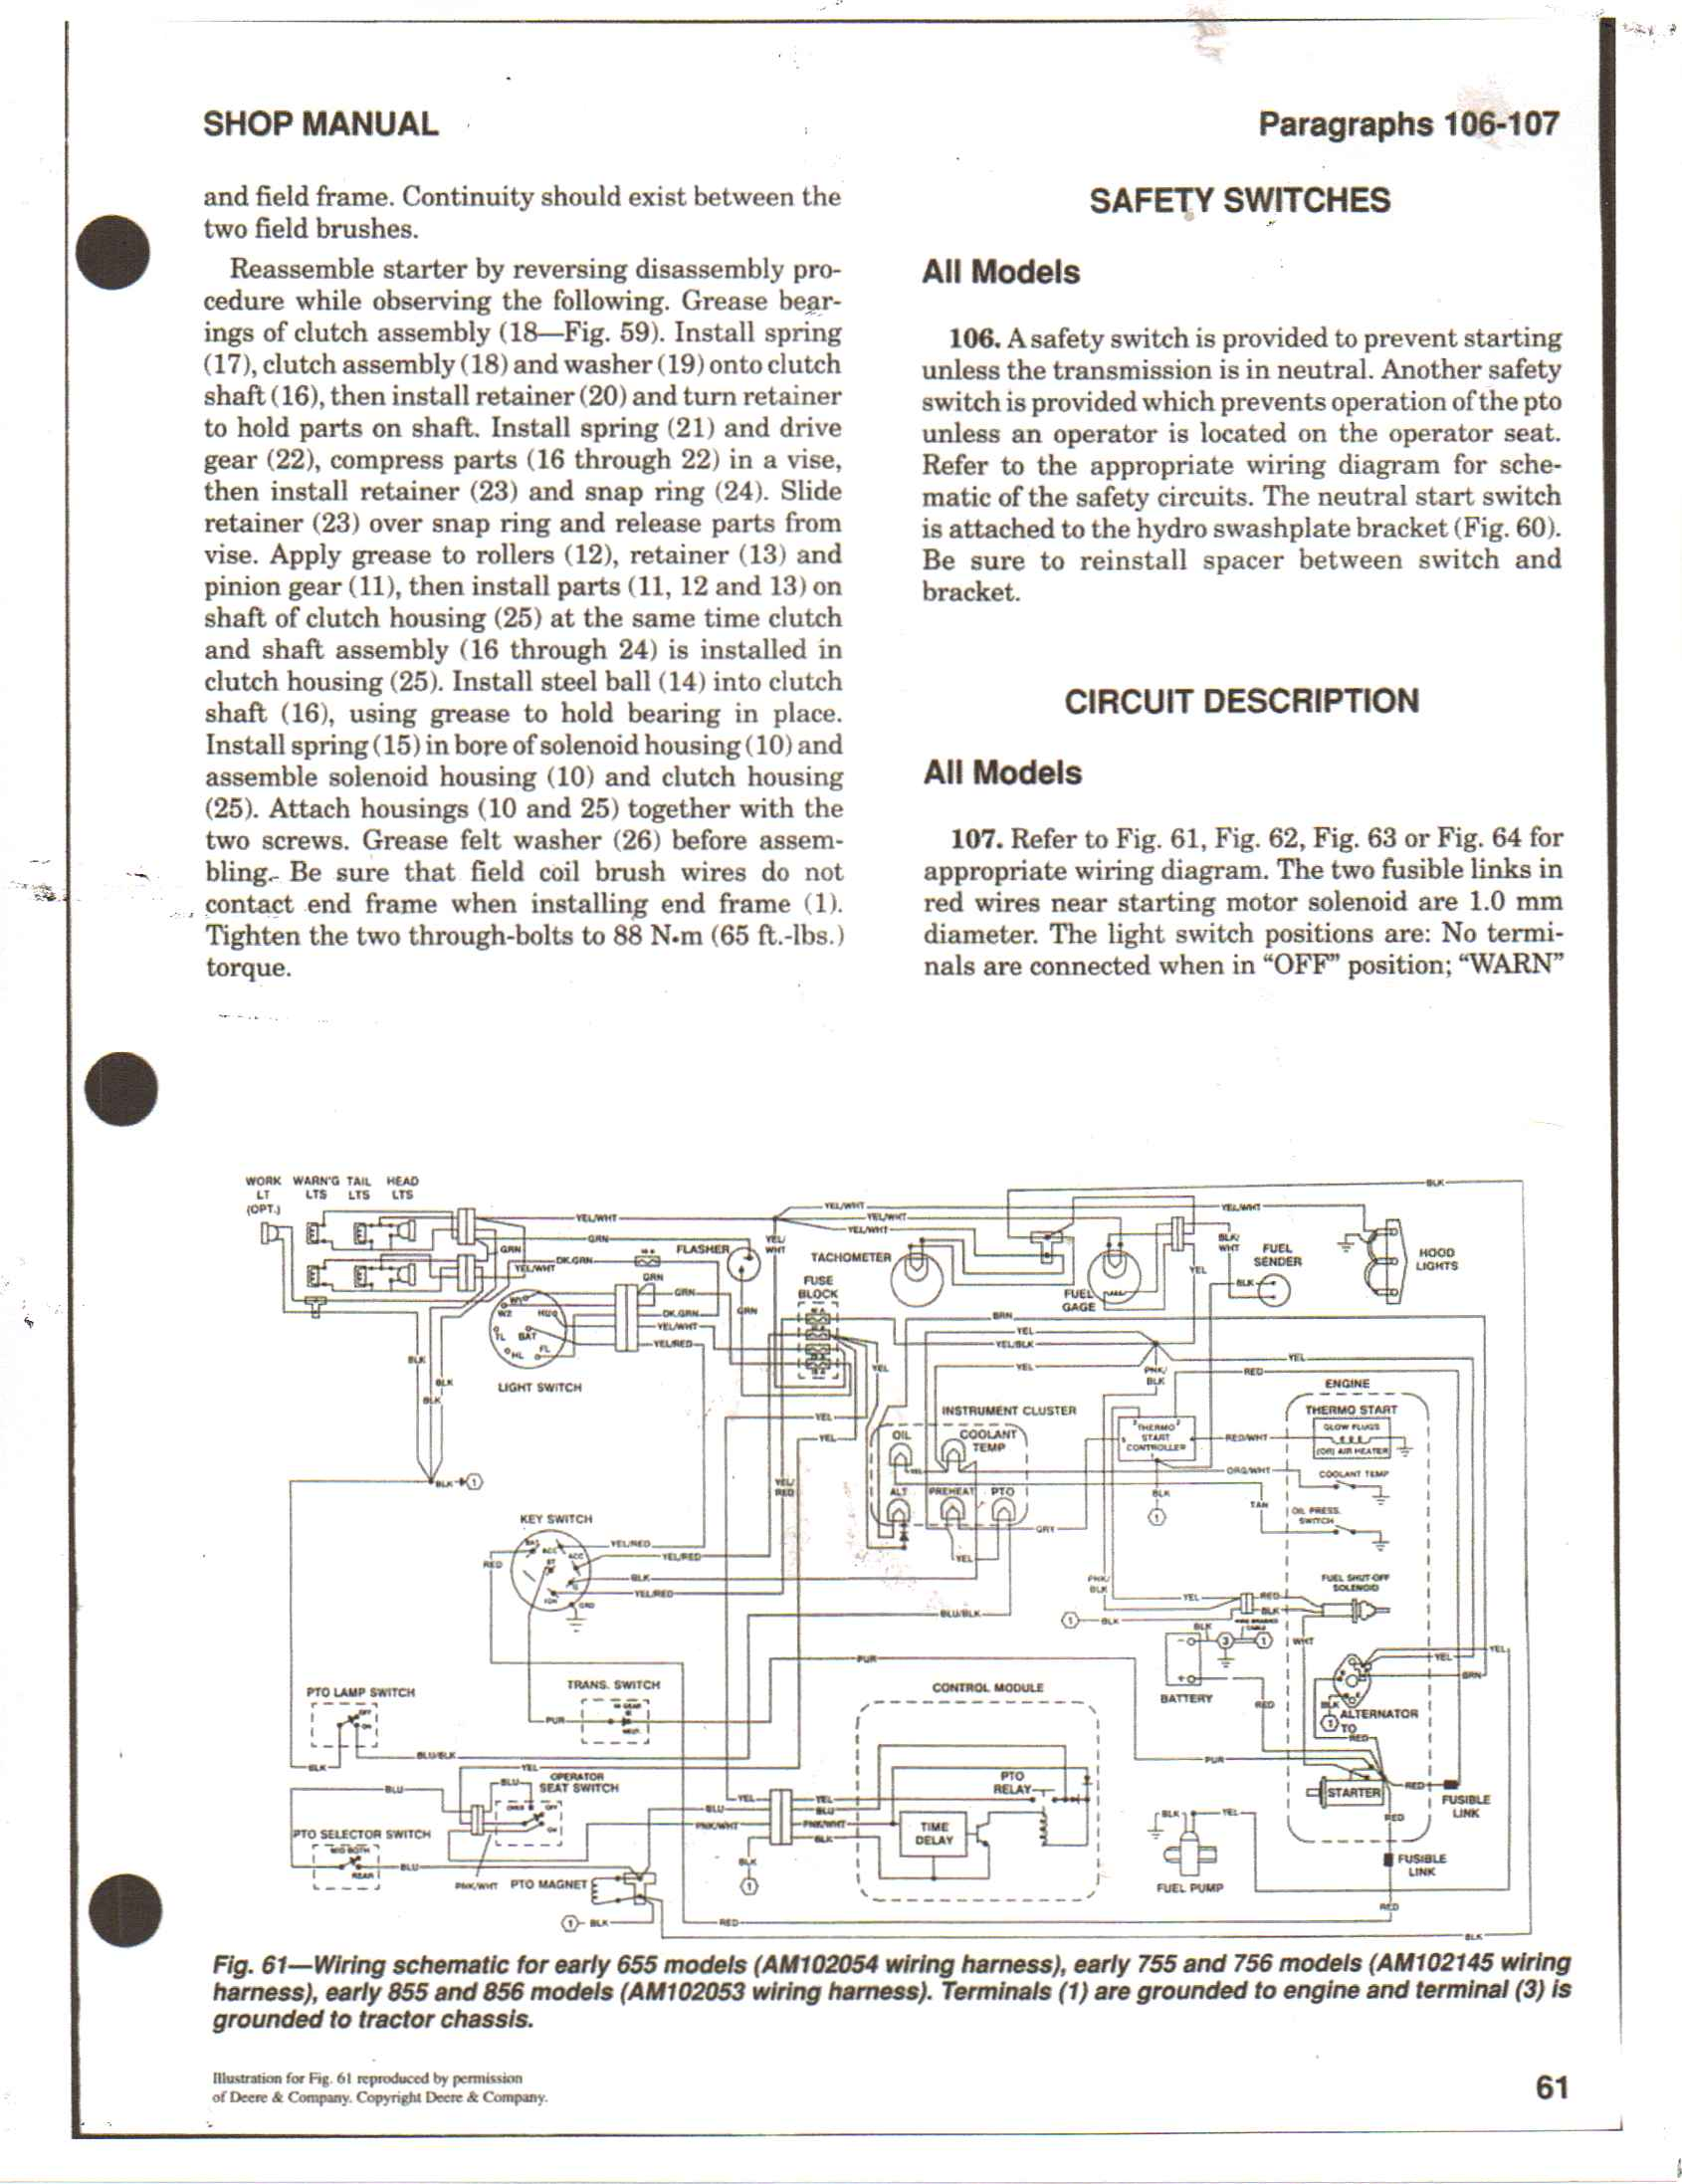 I Have A 755 Jonh Deere That Stopped Running It Is Not Gettin Power John Solenoid Wiring Diagram Full Size Image